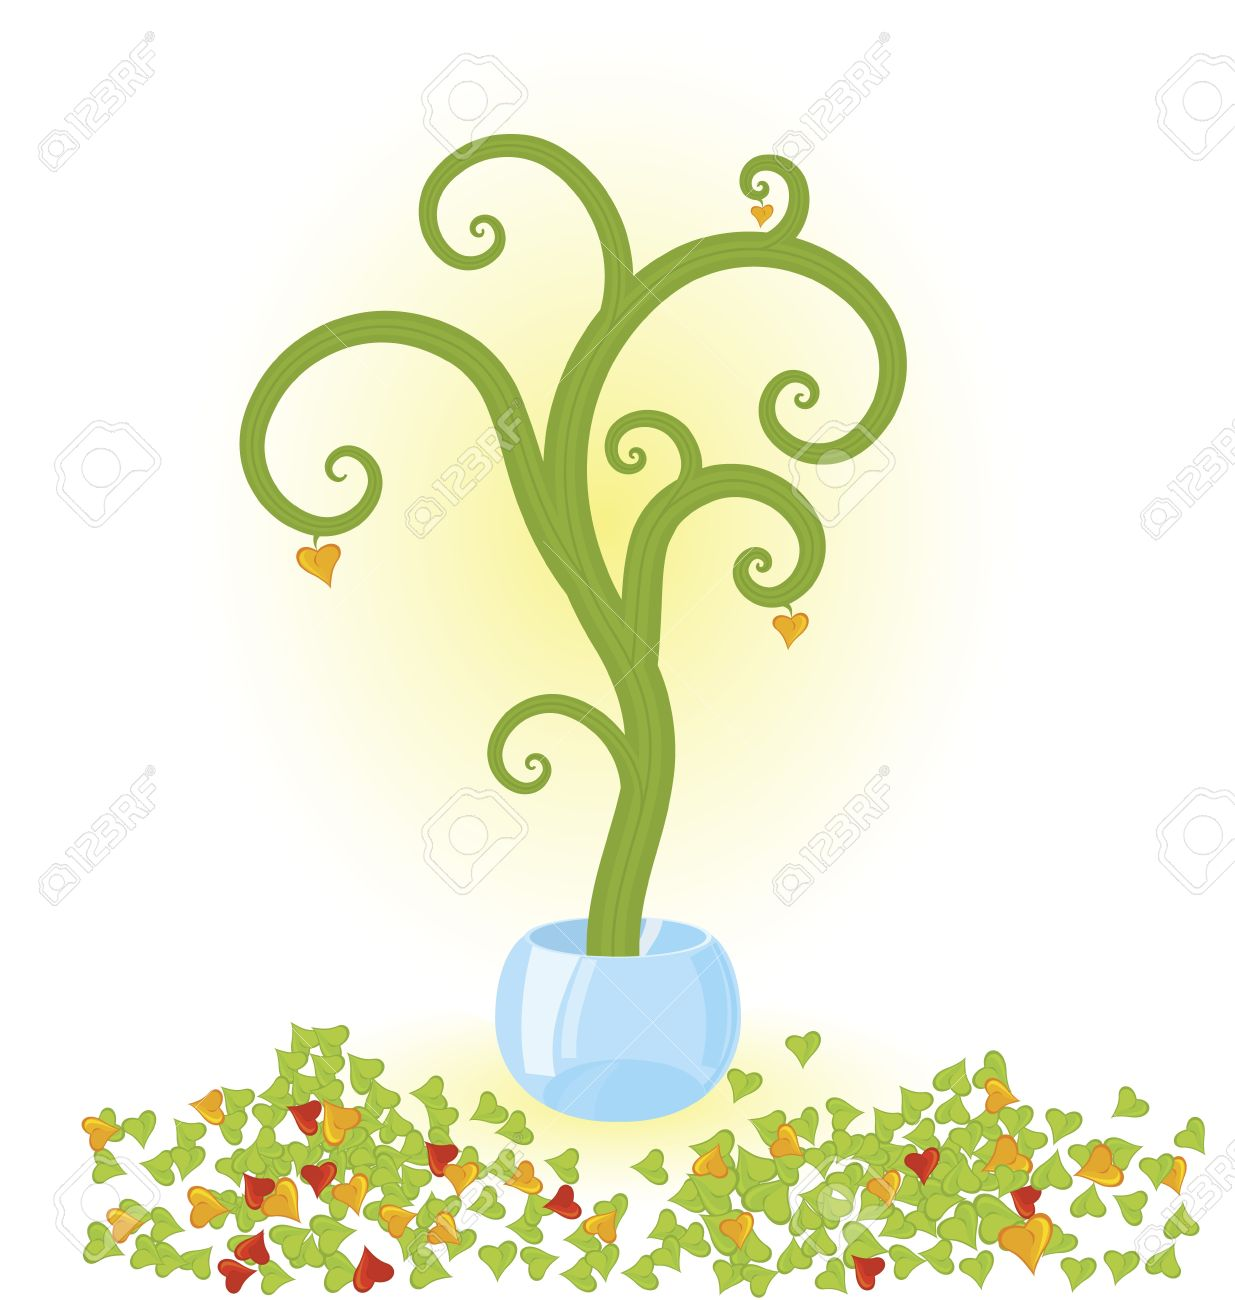 Vector Illustration Of A Tree With Fallen Leaves Growing In.